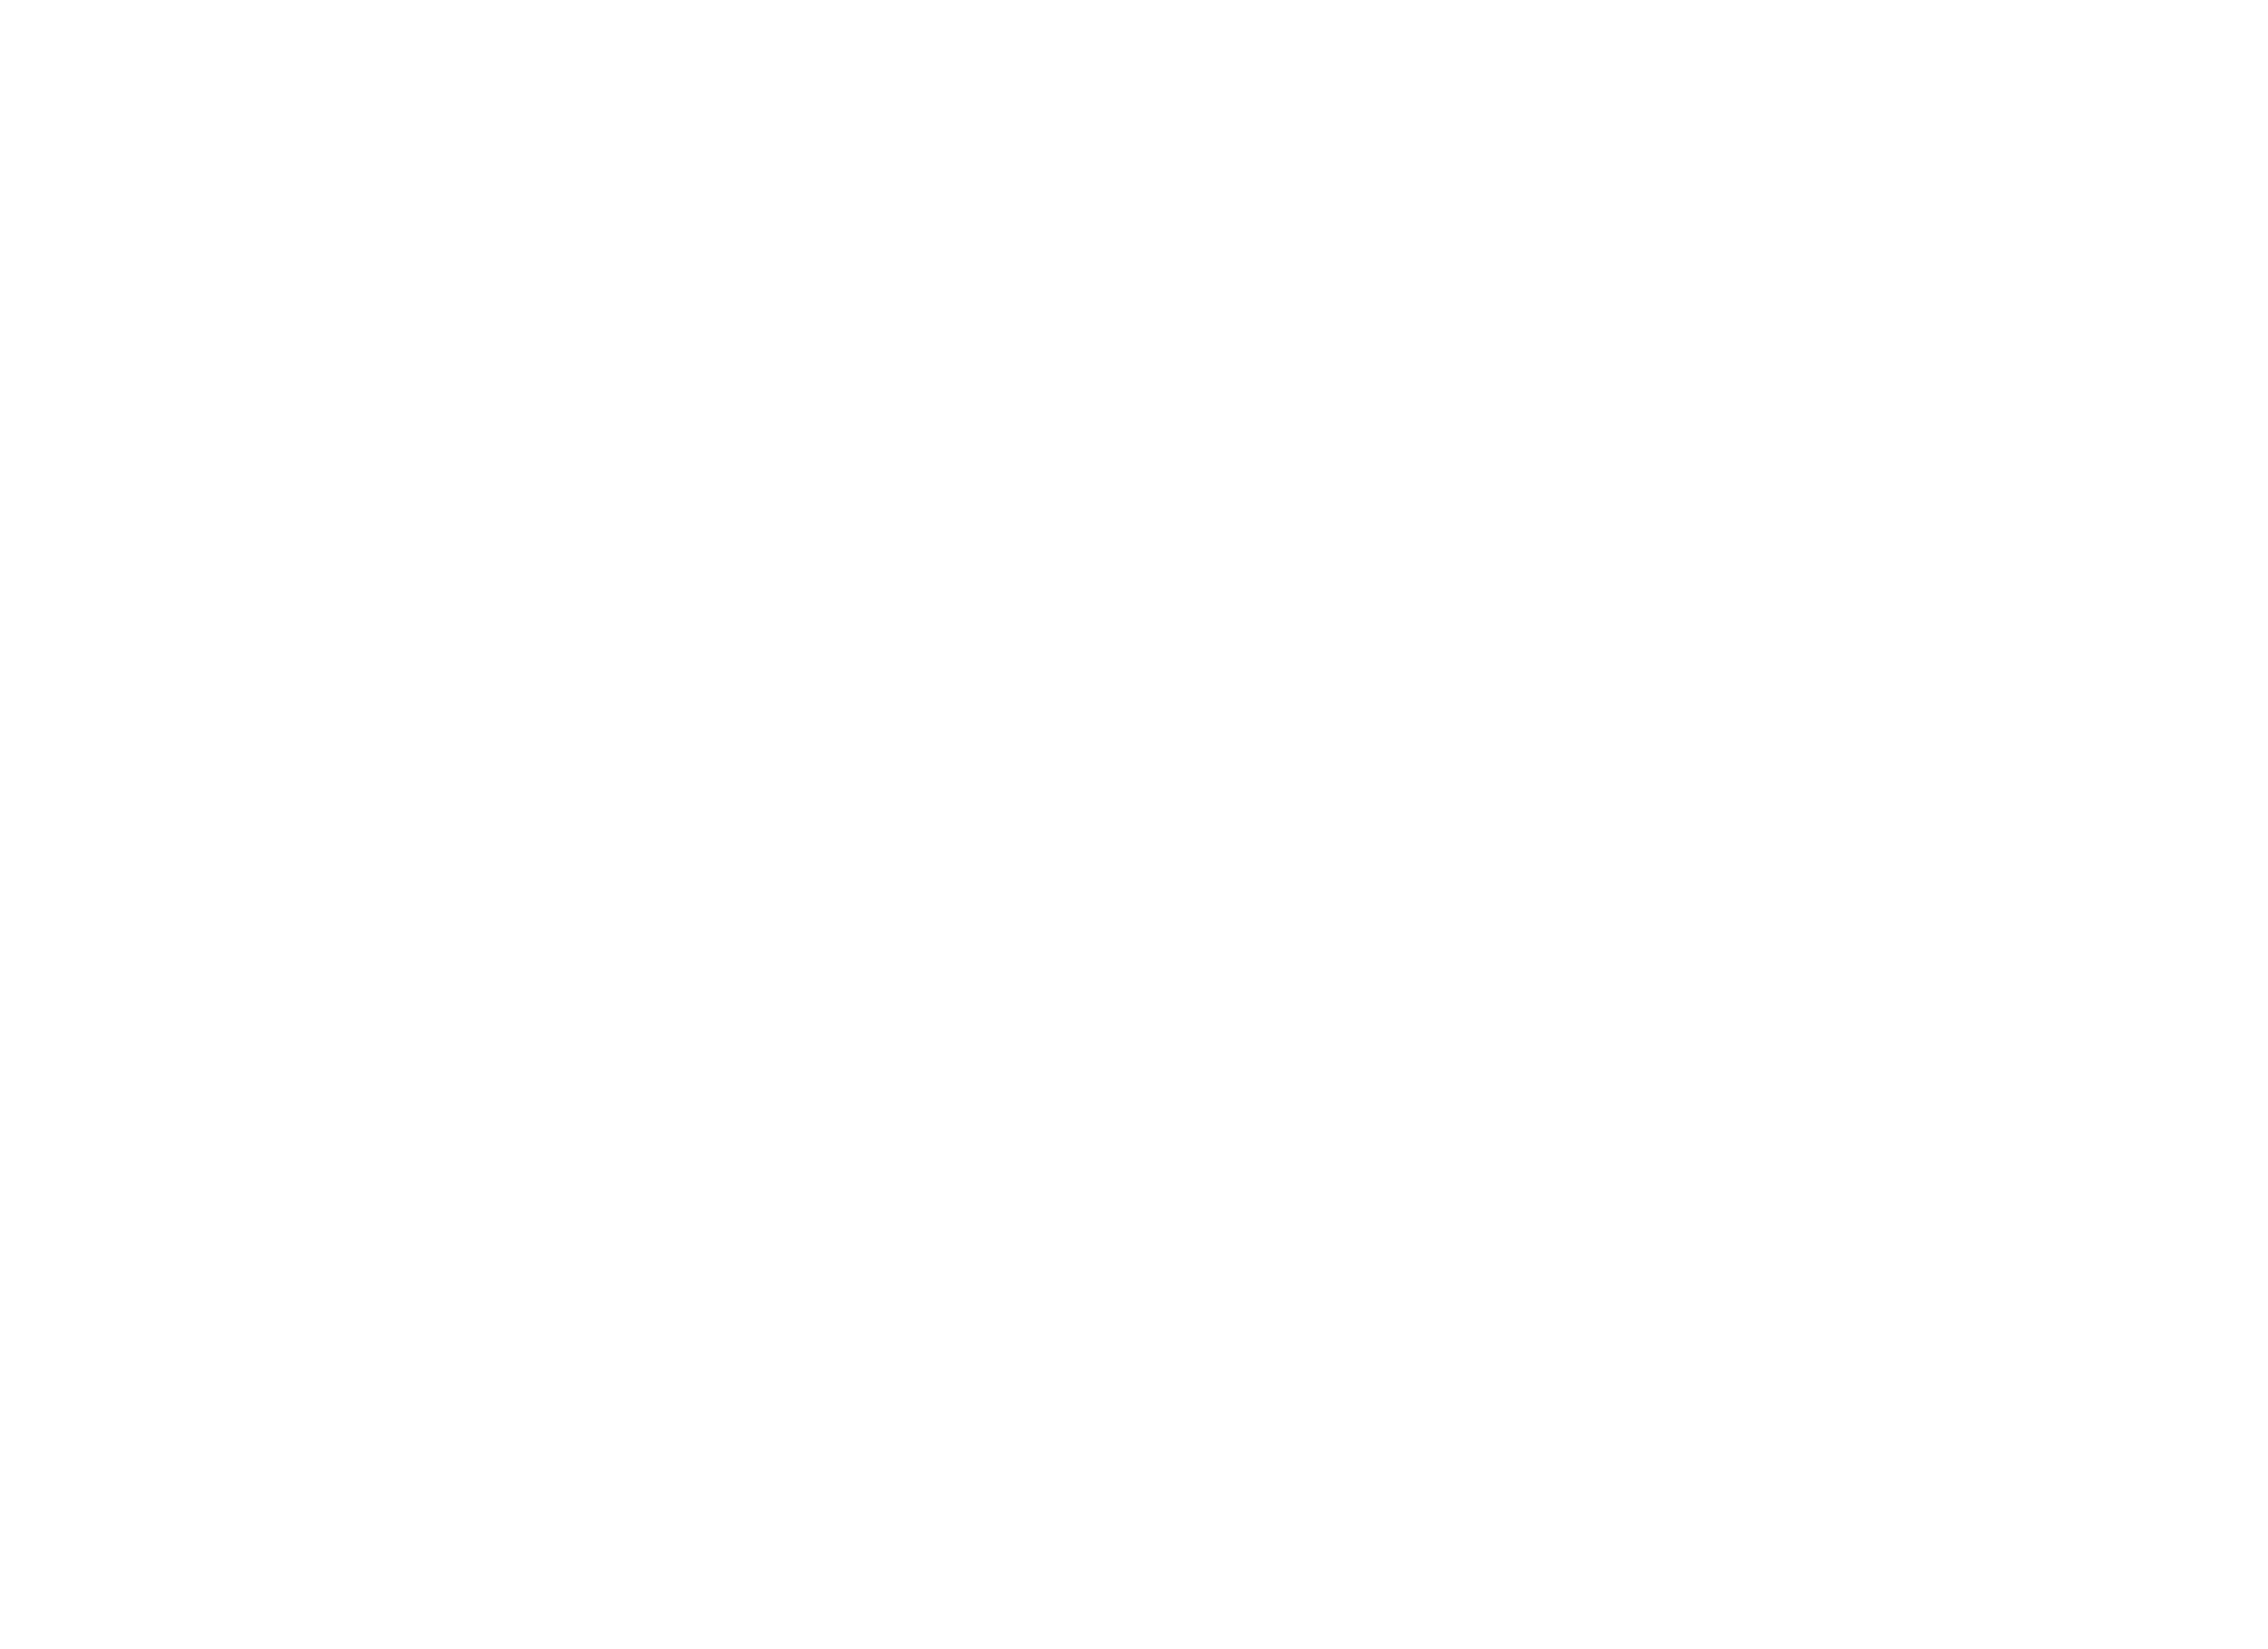 The Kwak Brothers